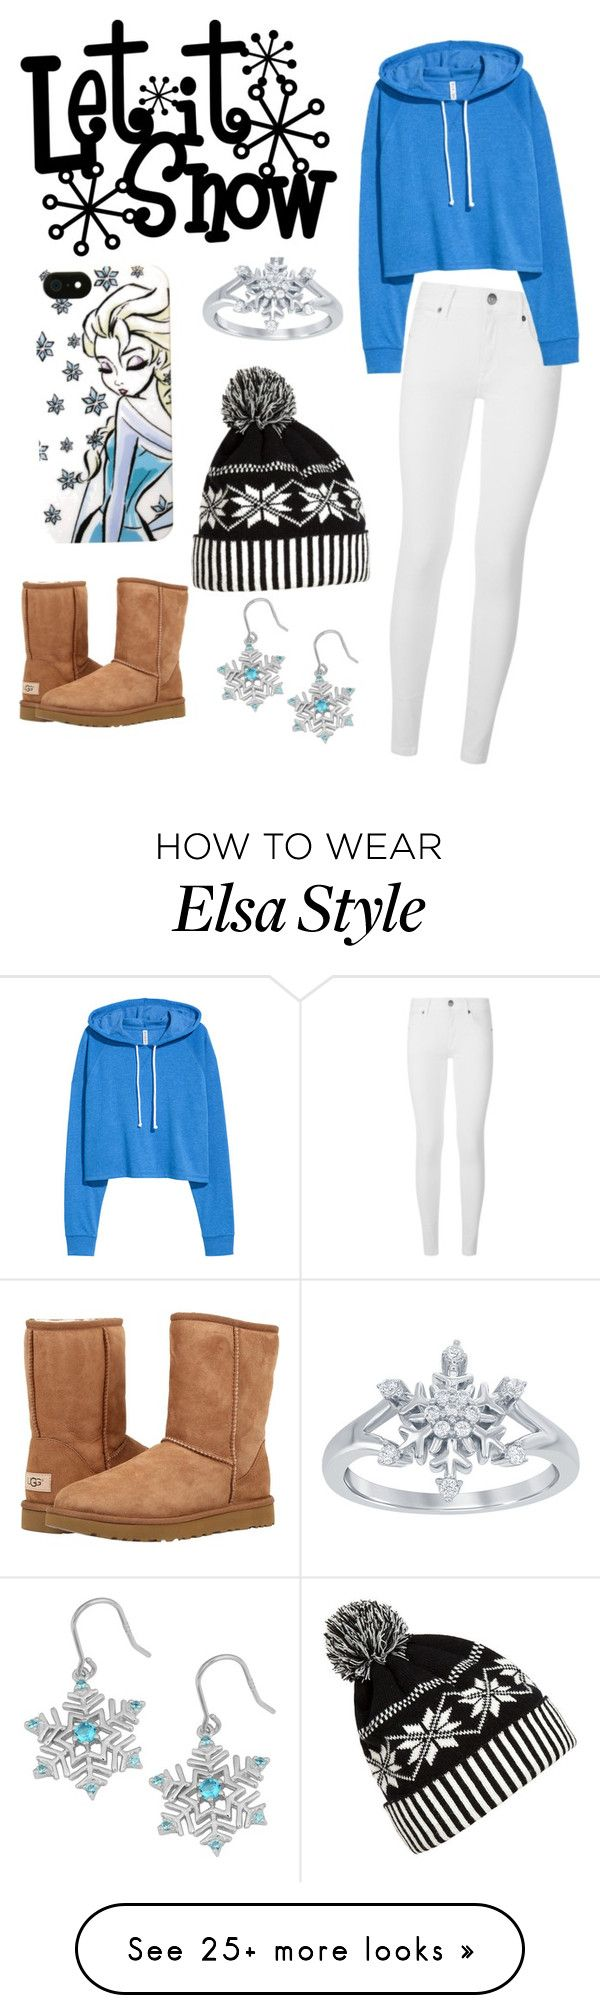 """Princess Elsa Look"" by stylestar1 on Polyvore featuring Disney, WithChic, Burberry, Fremada and UGG Australia"